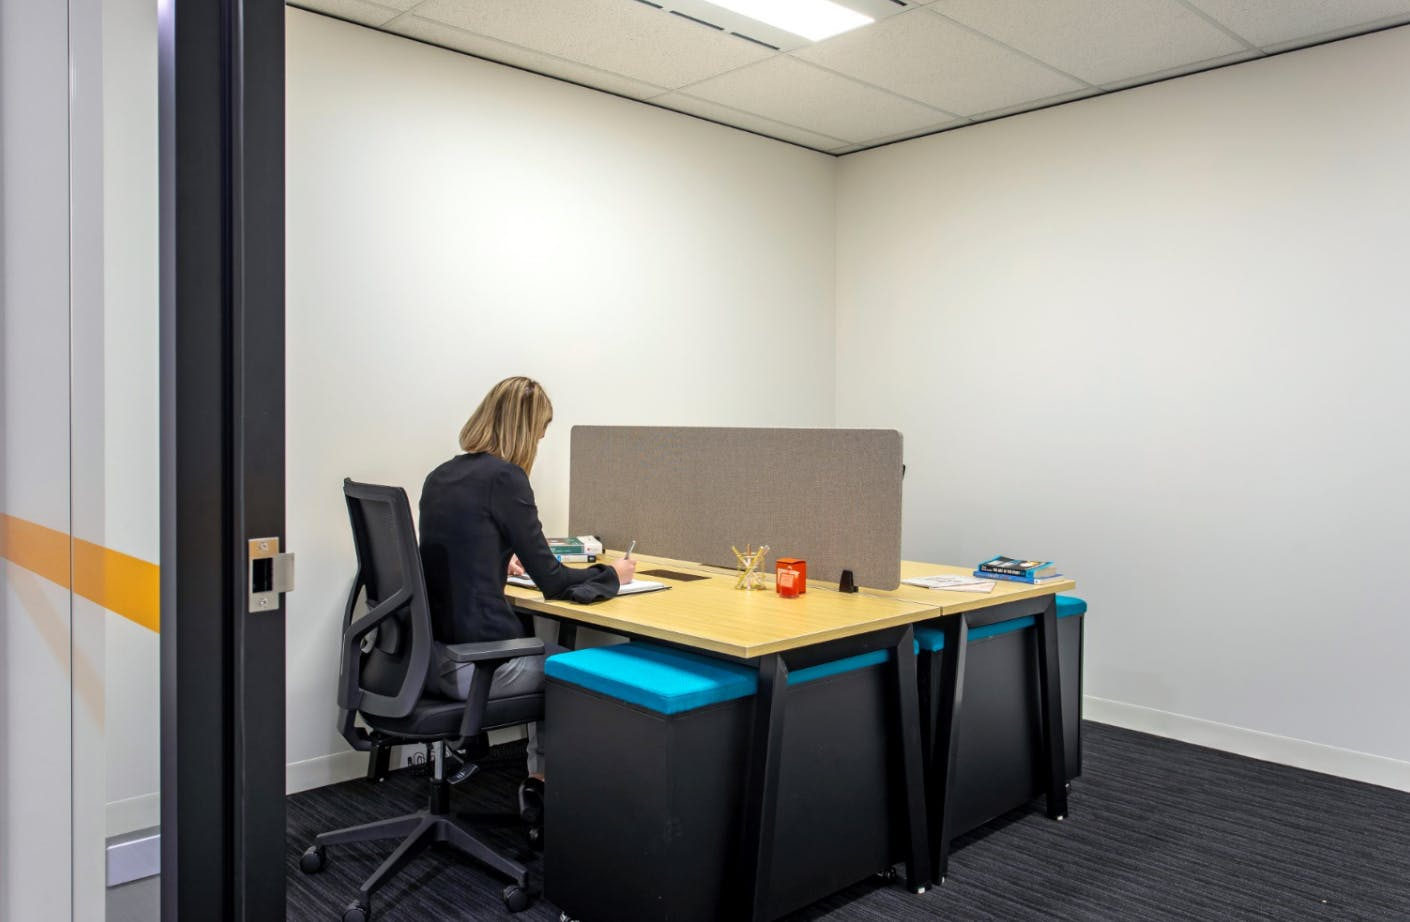 Suite 8, serviced office at Spot Co-Working, image 8